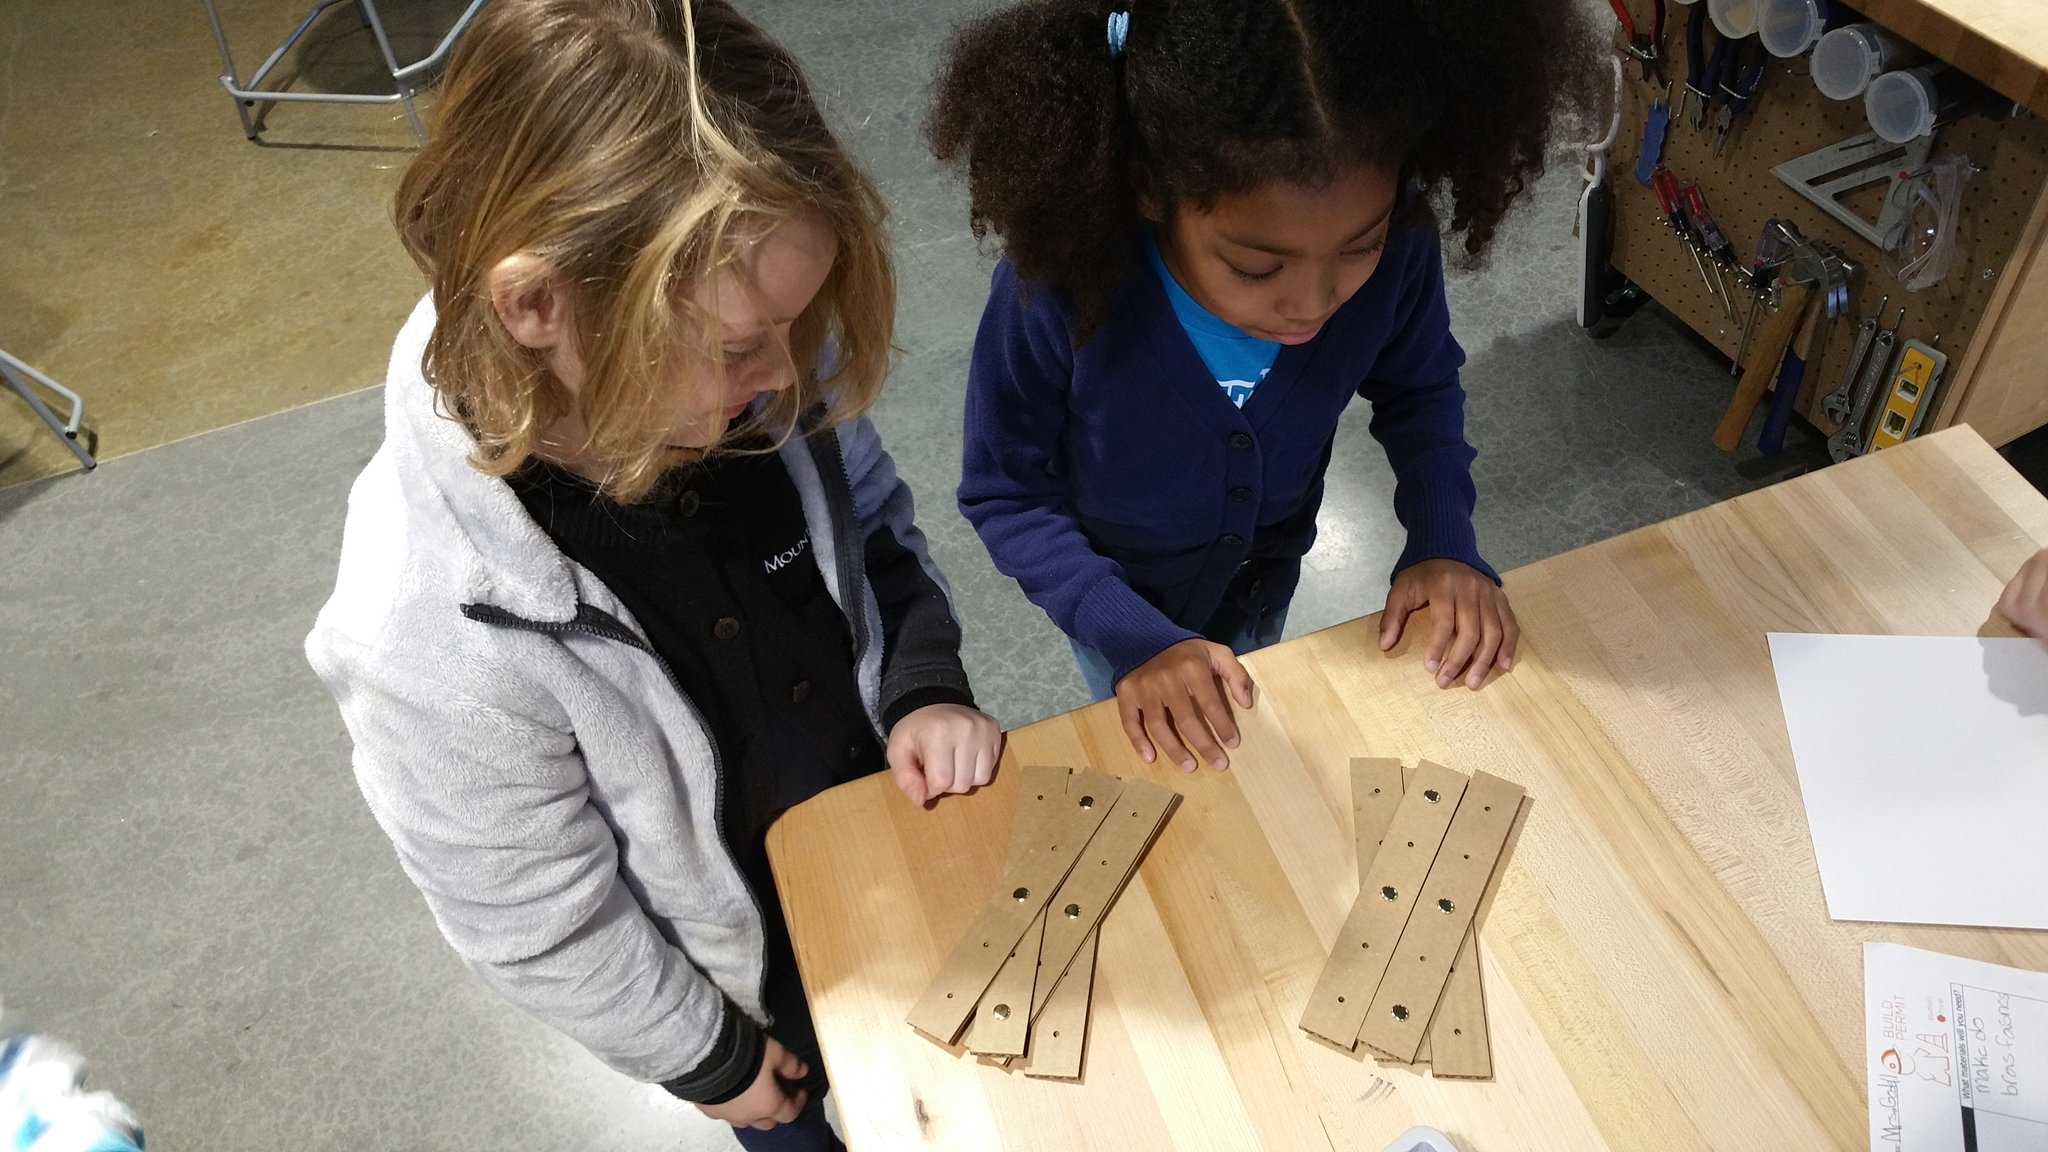 S1: I don't know what's wrong S2: Look at mine and then see what's mixed up on yours #kidquote Troubleshooting #MakerEd #elemaker #MVPSchool https://t.co/eXoDFUwQD2